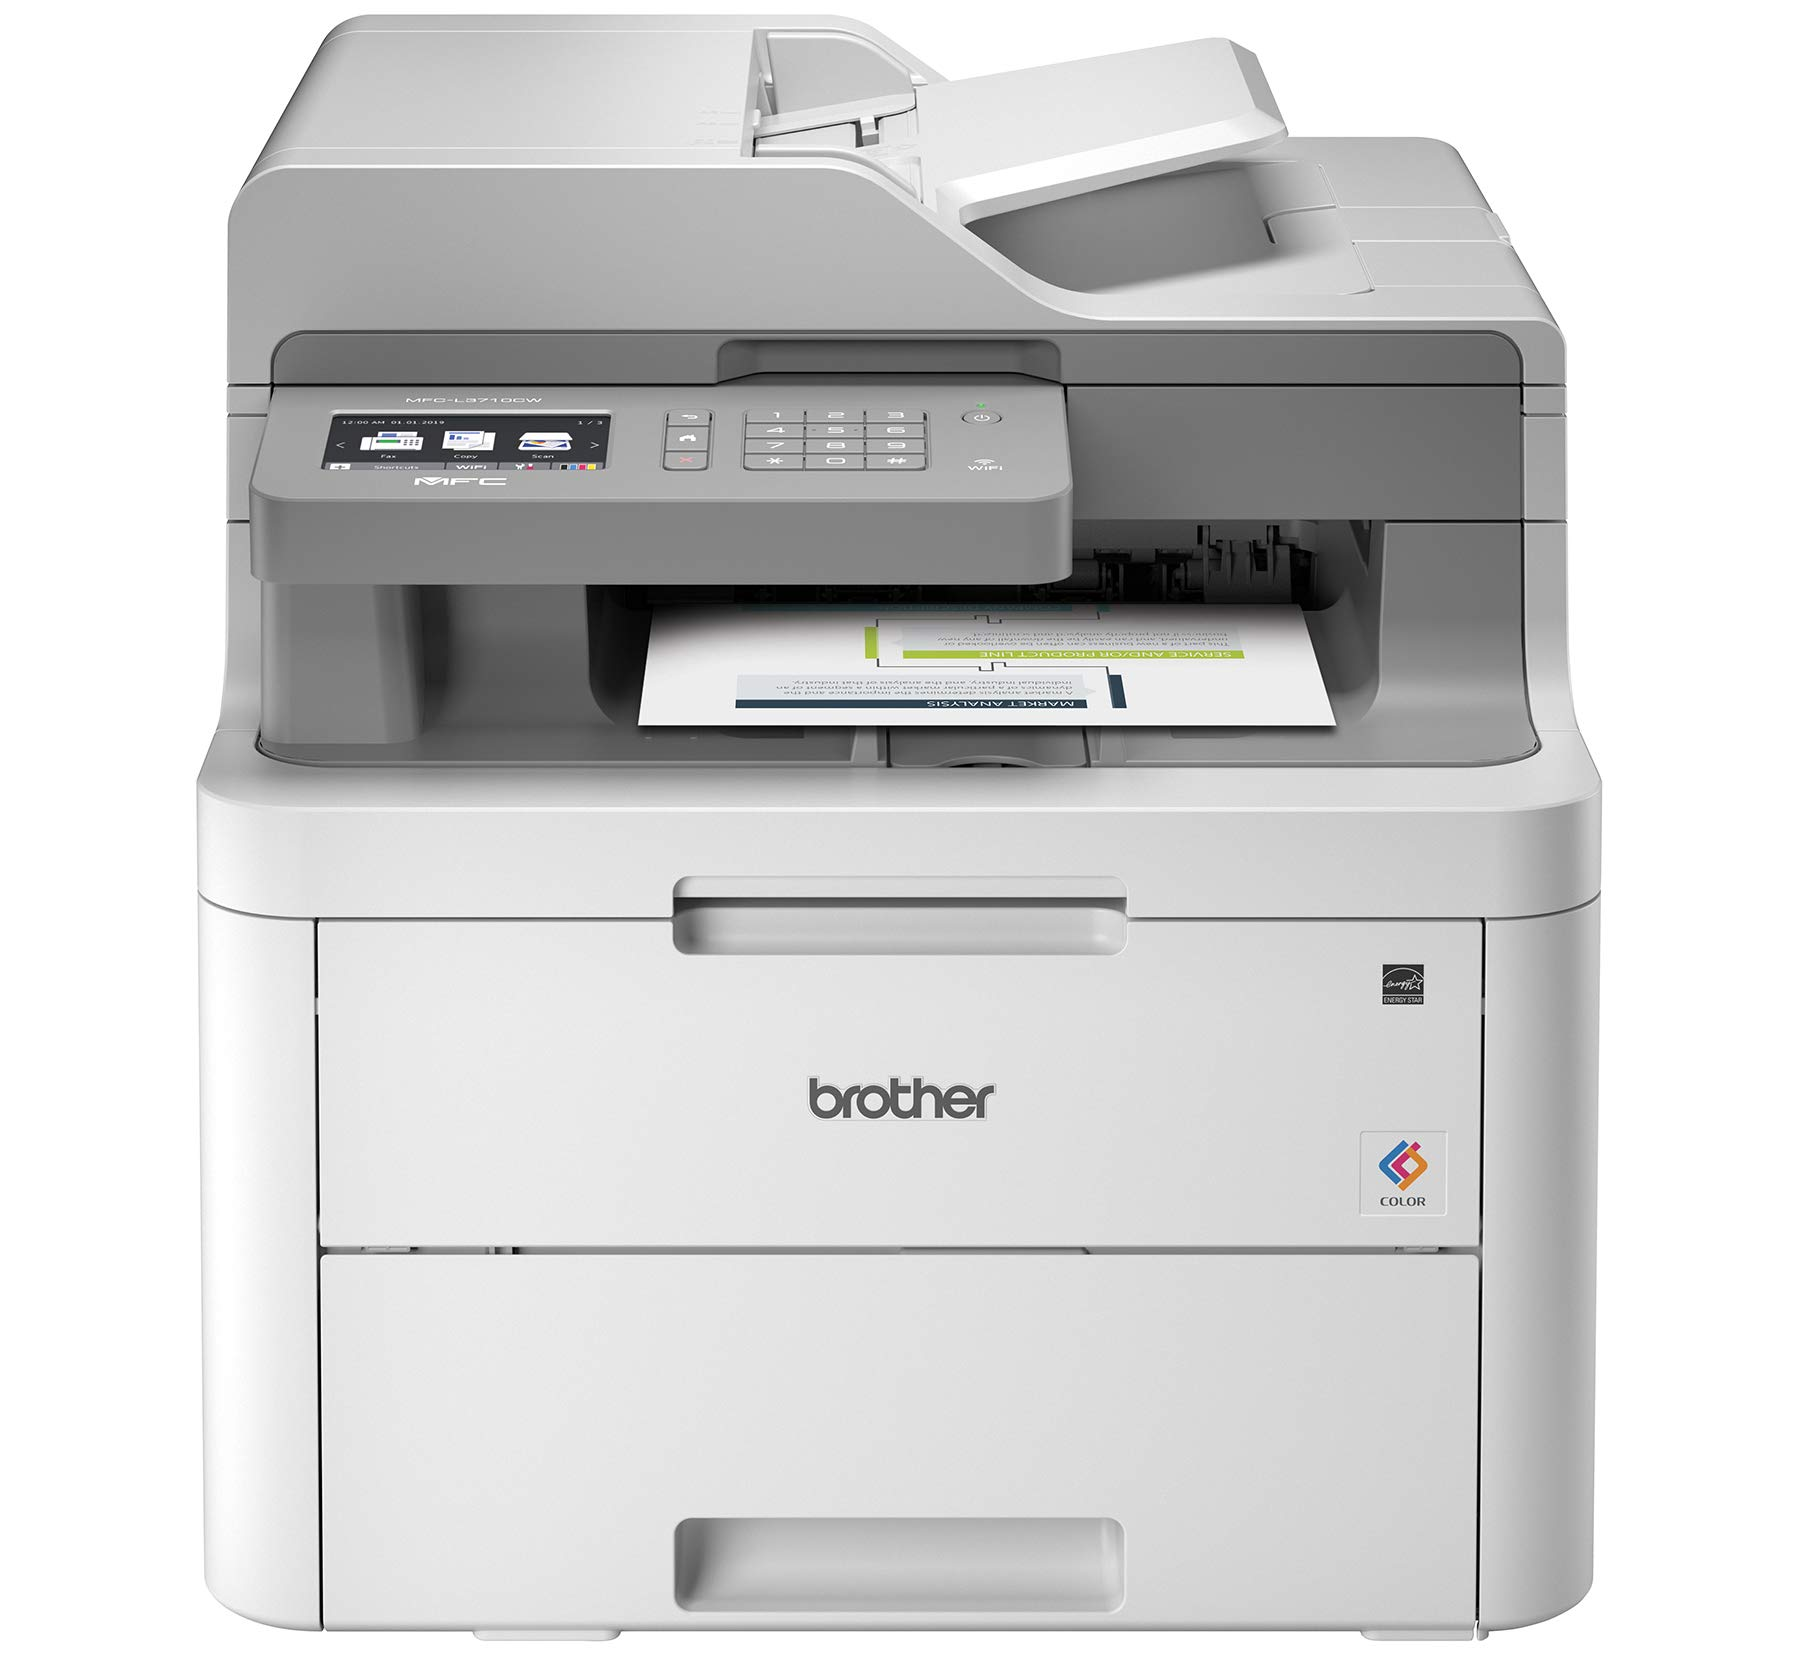 Brother MFC-L3710CW Compact Digital Color All-in-One Printer Providing Laser Printer Quality Results with Wireless, Amazon Dash Replenishment Enabled by Brother (Image #1)